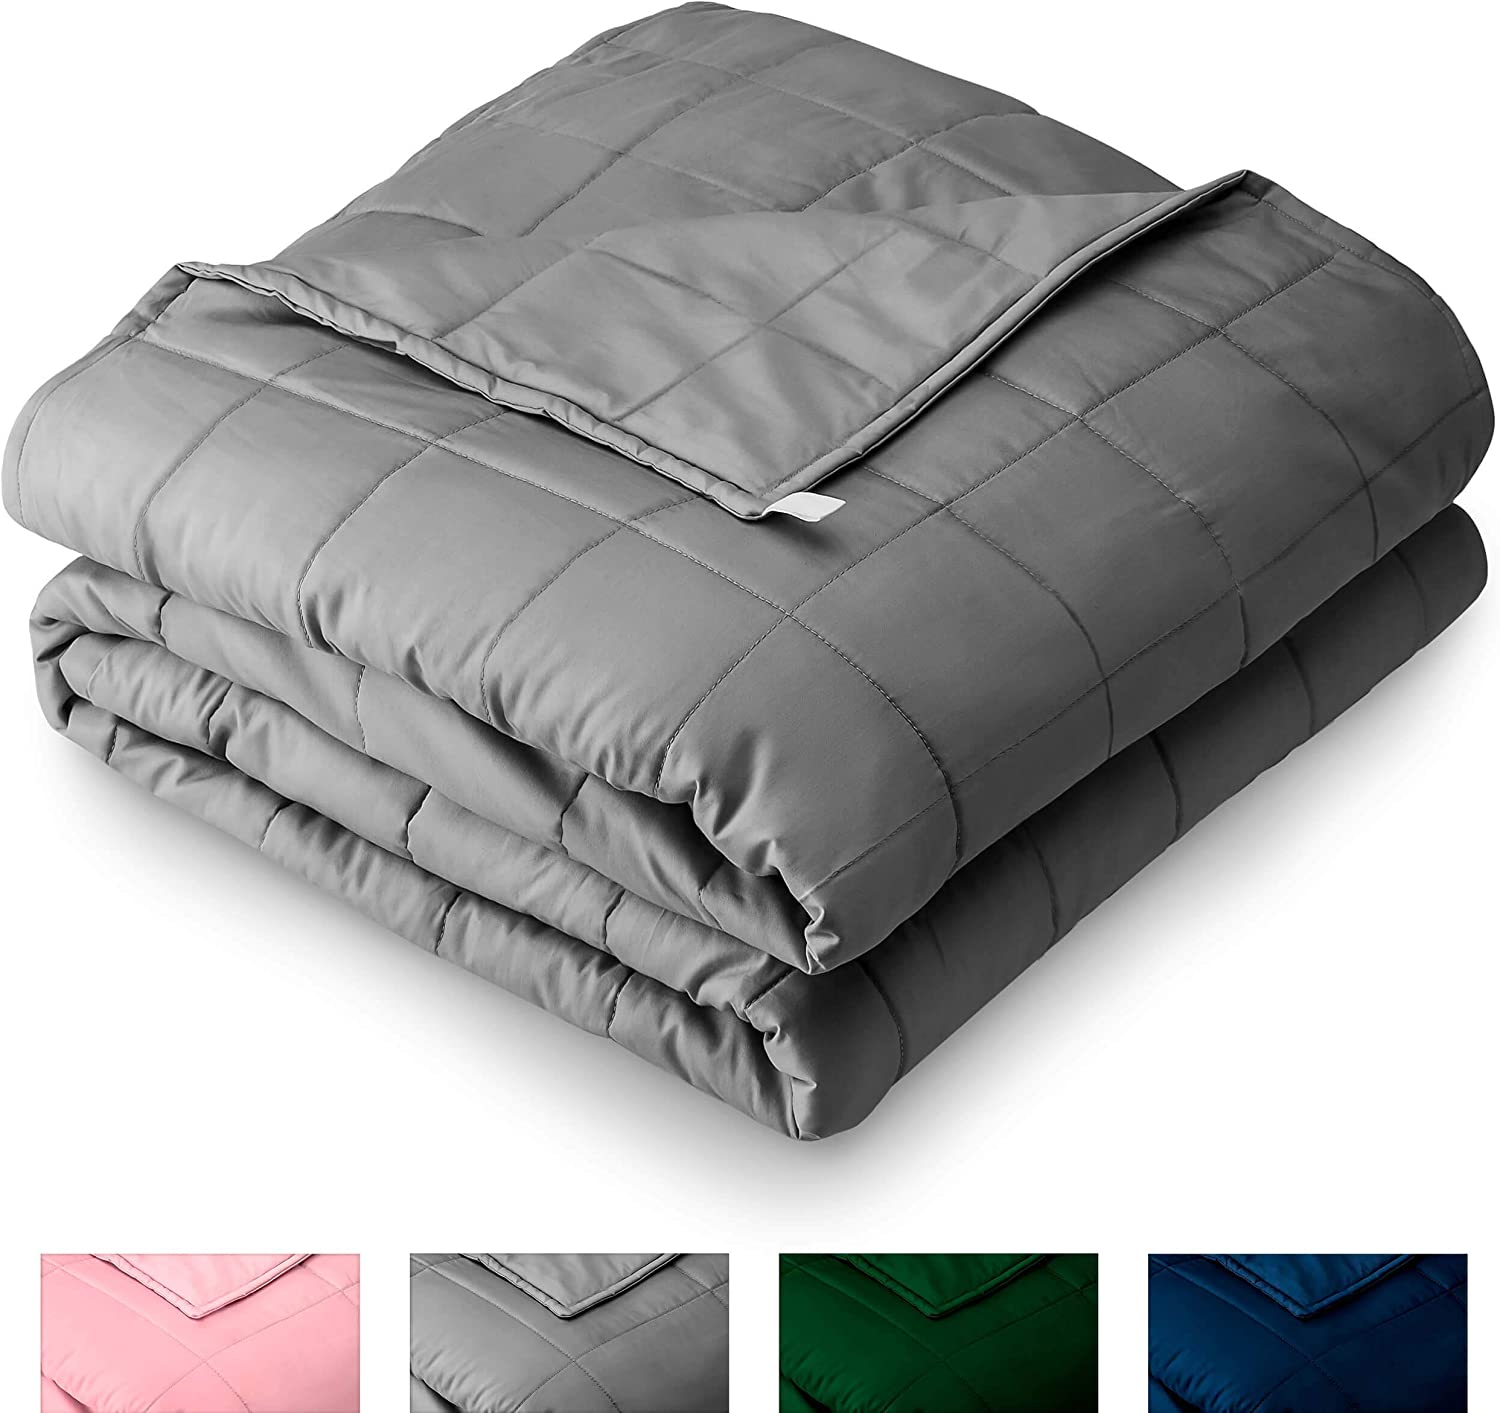 "Bare Home Weighted Blanket for Adults and Kids 17lb (60"" x 80"") - All-Natural 100% Cotton - Premium Heavy Blanket Nontoxic Glass Beads (Grey, 60""x80"")"